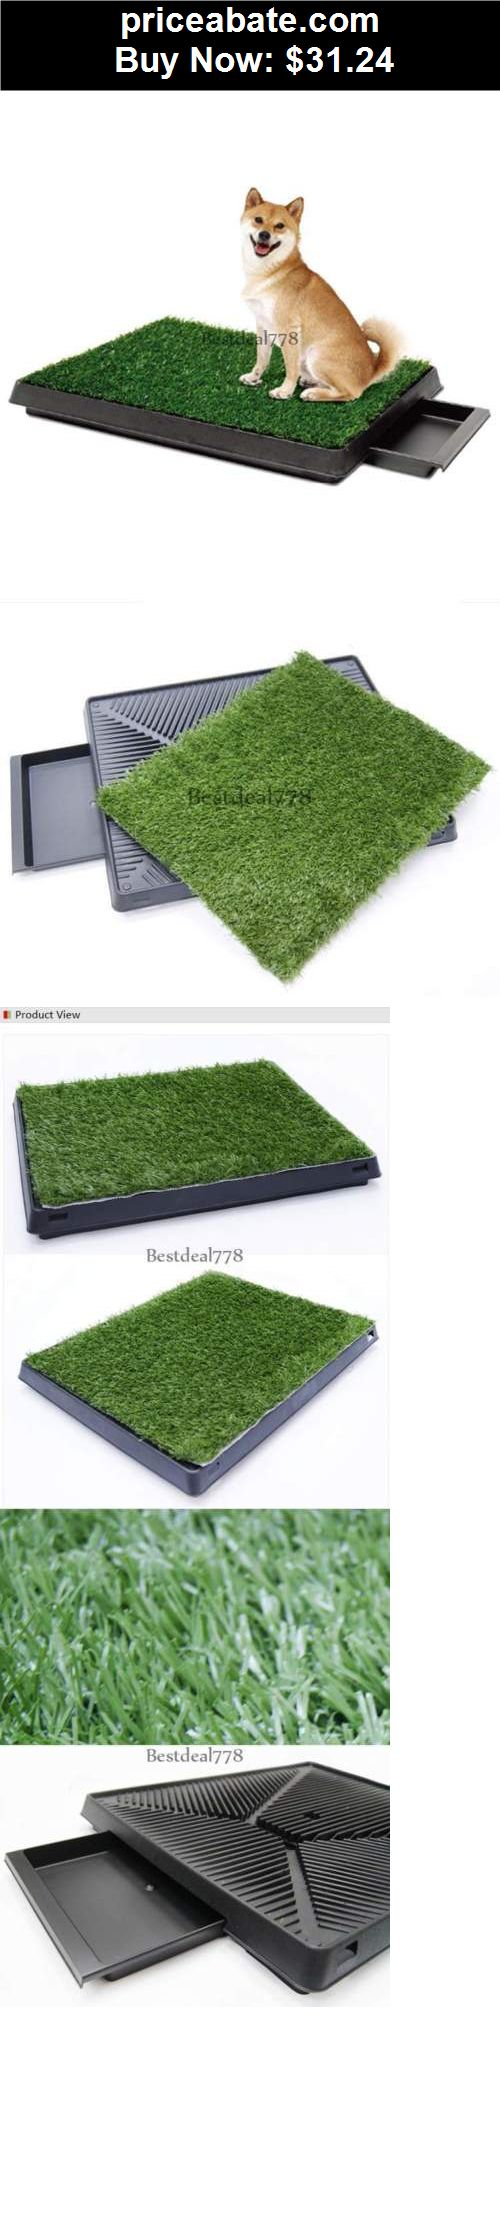 A Place For The Puppies To Go: Potty Pad | | ::::: BEST DIY PINS! :::::✂ |  Pinterest | Outdoor Dog, Dog And Local Shelters